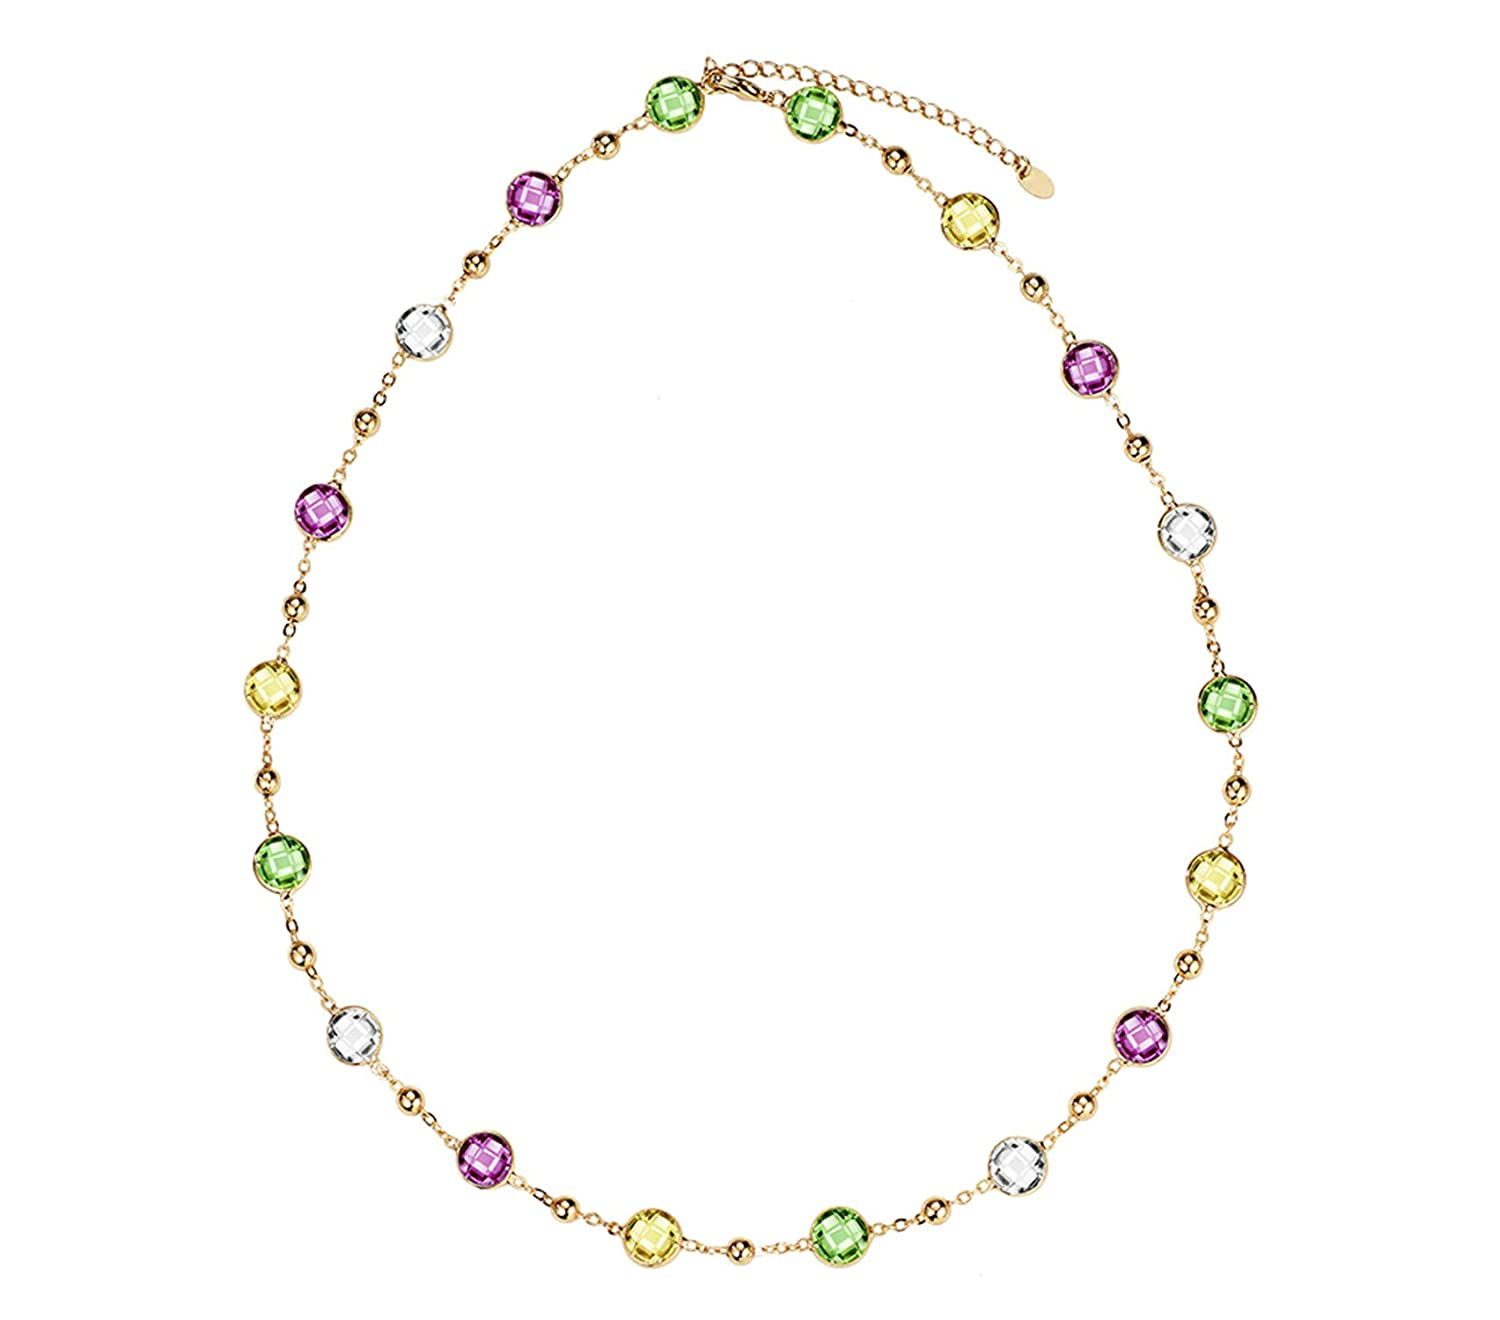 Impercity Crystals Light Yellow Choker Chain Maxi Long Necklaces For Women ValentineS Day Gifts